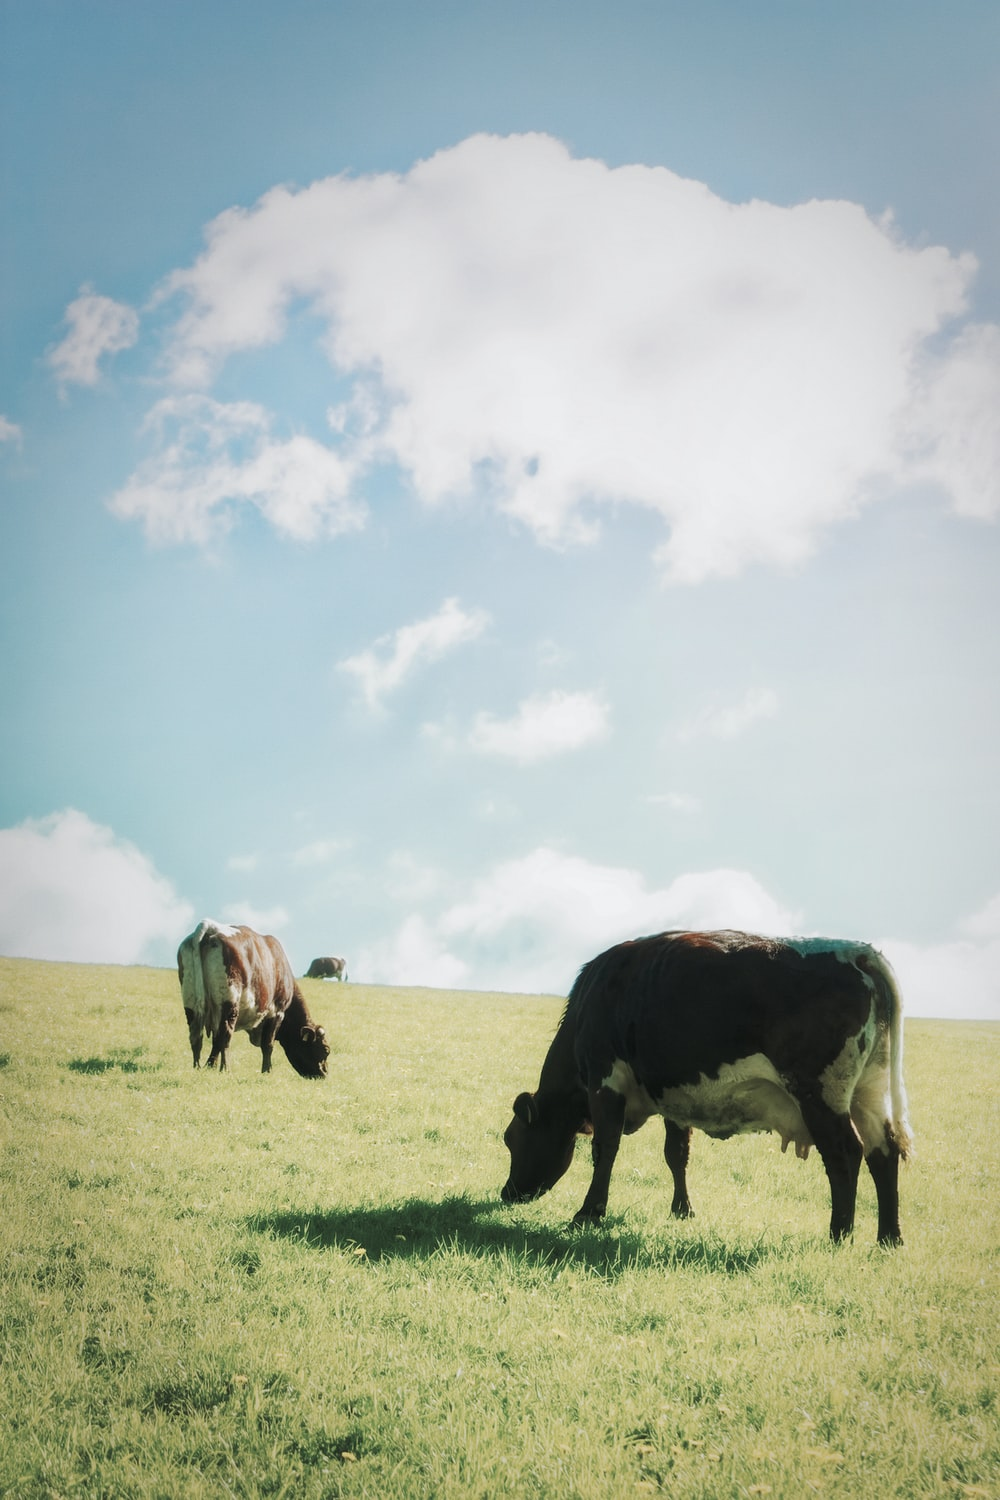 herd of cows on green grass field under white clouds and blue sky during daytime